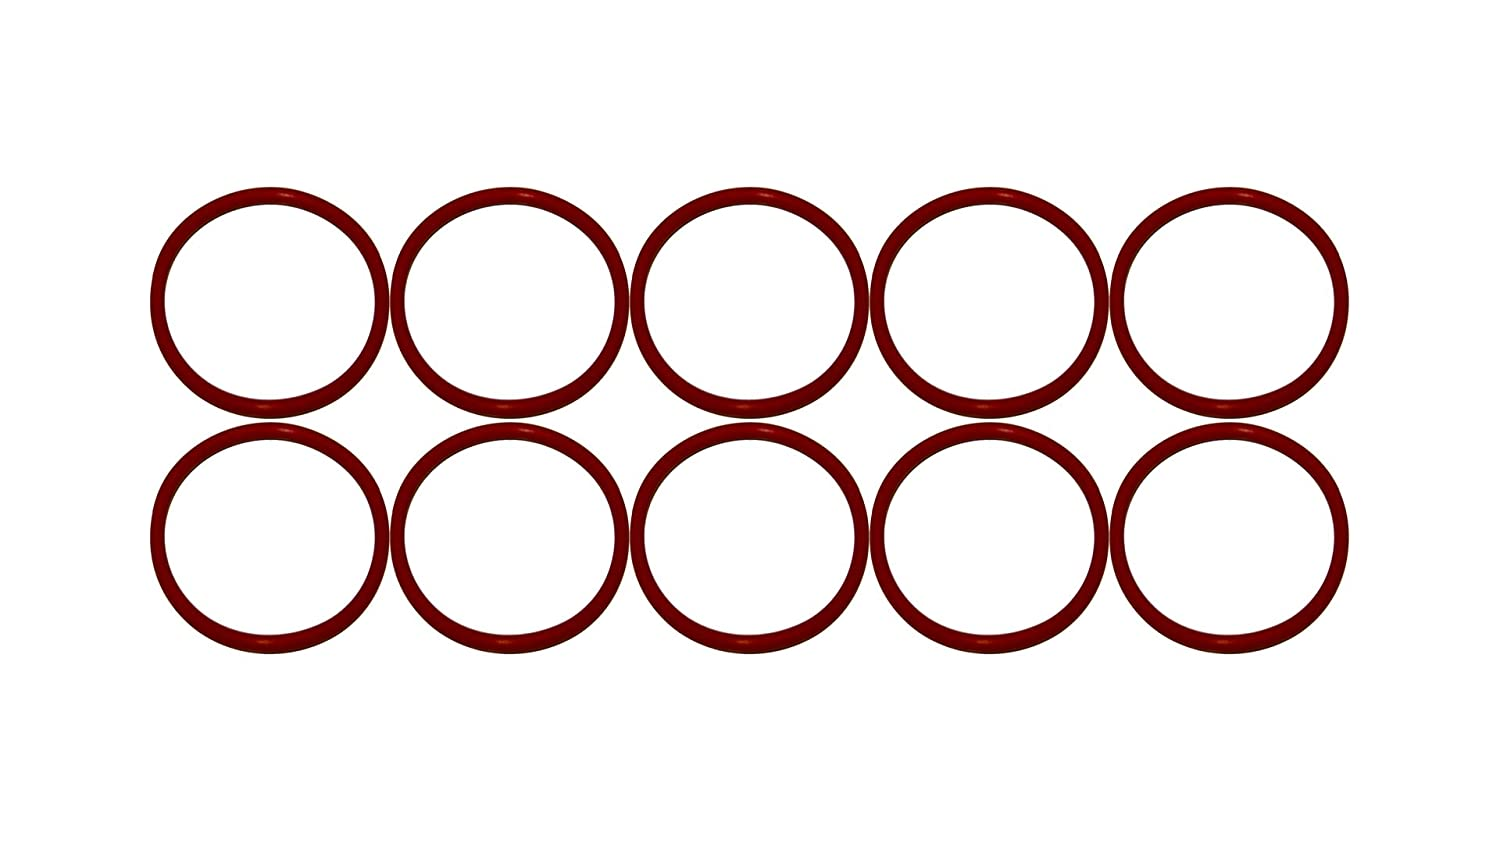 Ozone and Sunlight 12-1//2 ID 13 OD Sterling Seal ORSIL454x10 Number 454 Standard Silicone O-Ring Pack of 10 Excellent Resistance to Oxygen Vinyl Methyl Silicone 70 Durometer Hardness